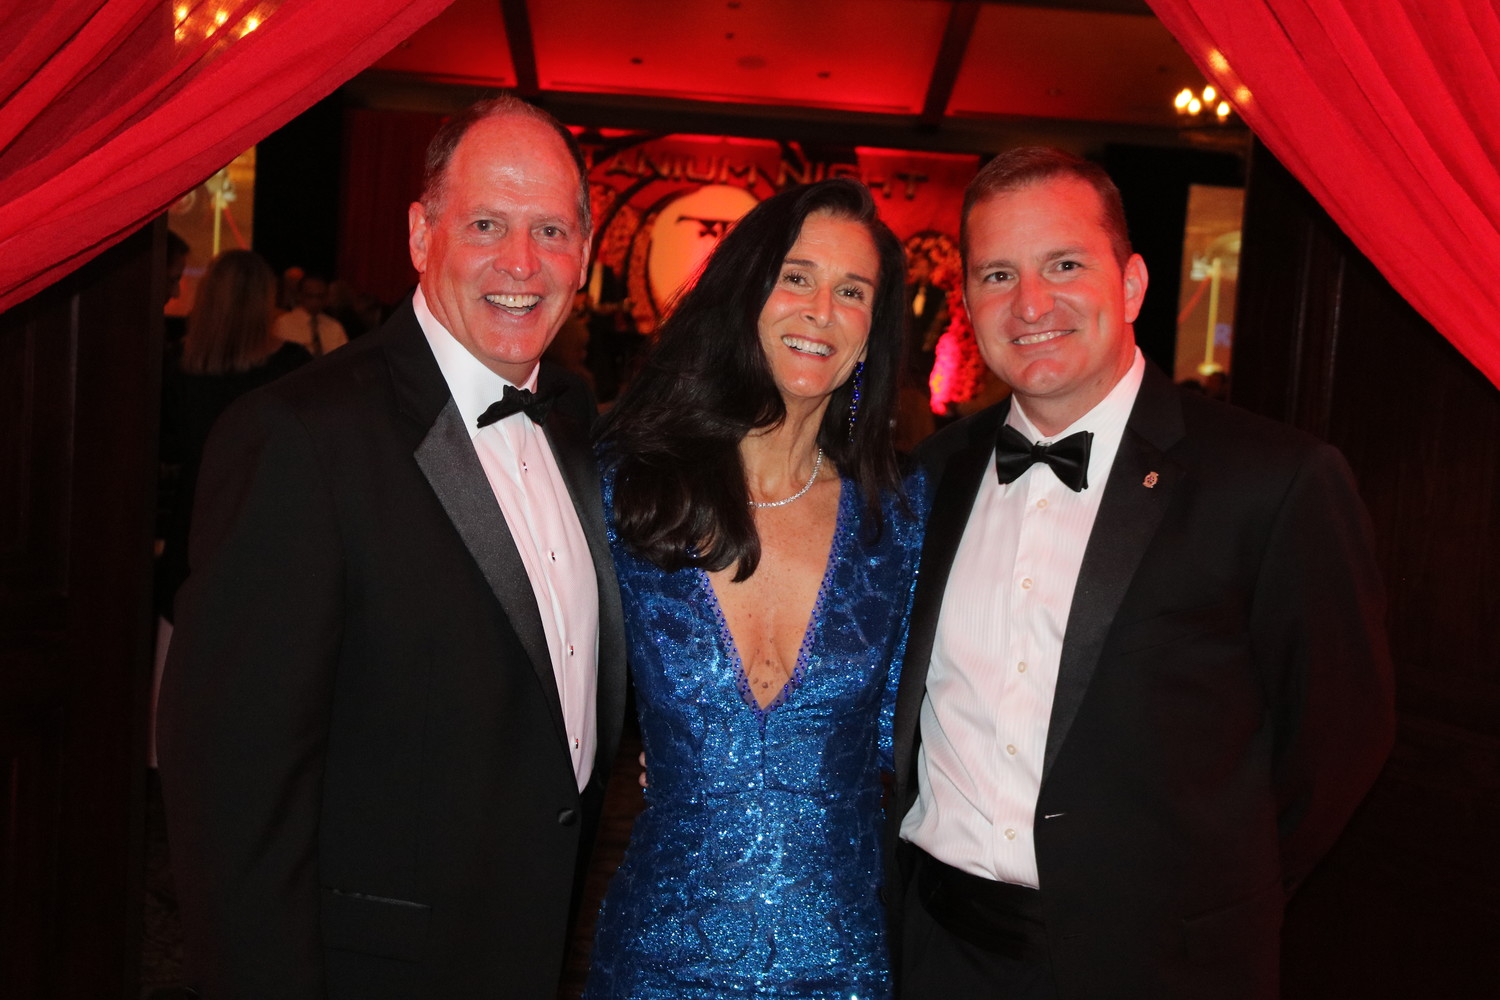 Rotary Club of Ponte Vedra Beach President-Elect Mark Farrell, President Elect-Elect Vickie Cavey and 2017-2018 President Billy Wagner gather at the club's James Bond-themed Mineral City Celebration, held on April 7 at the TPC Sawgrass Clubhouse.